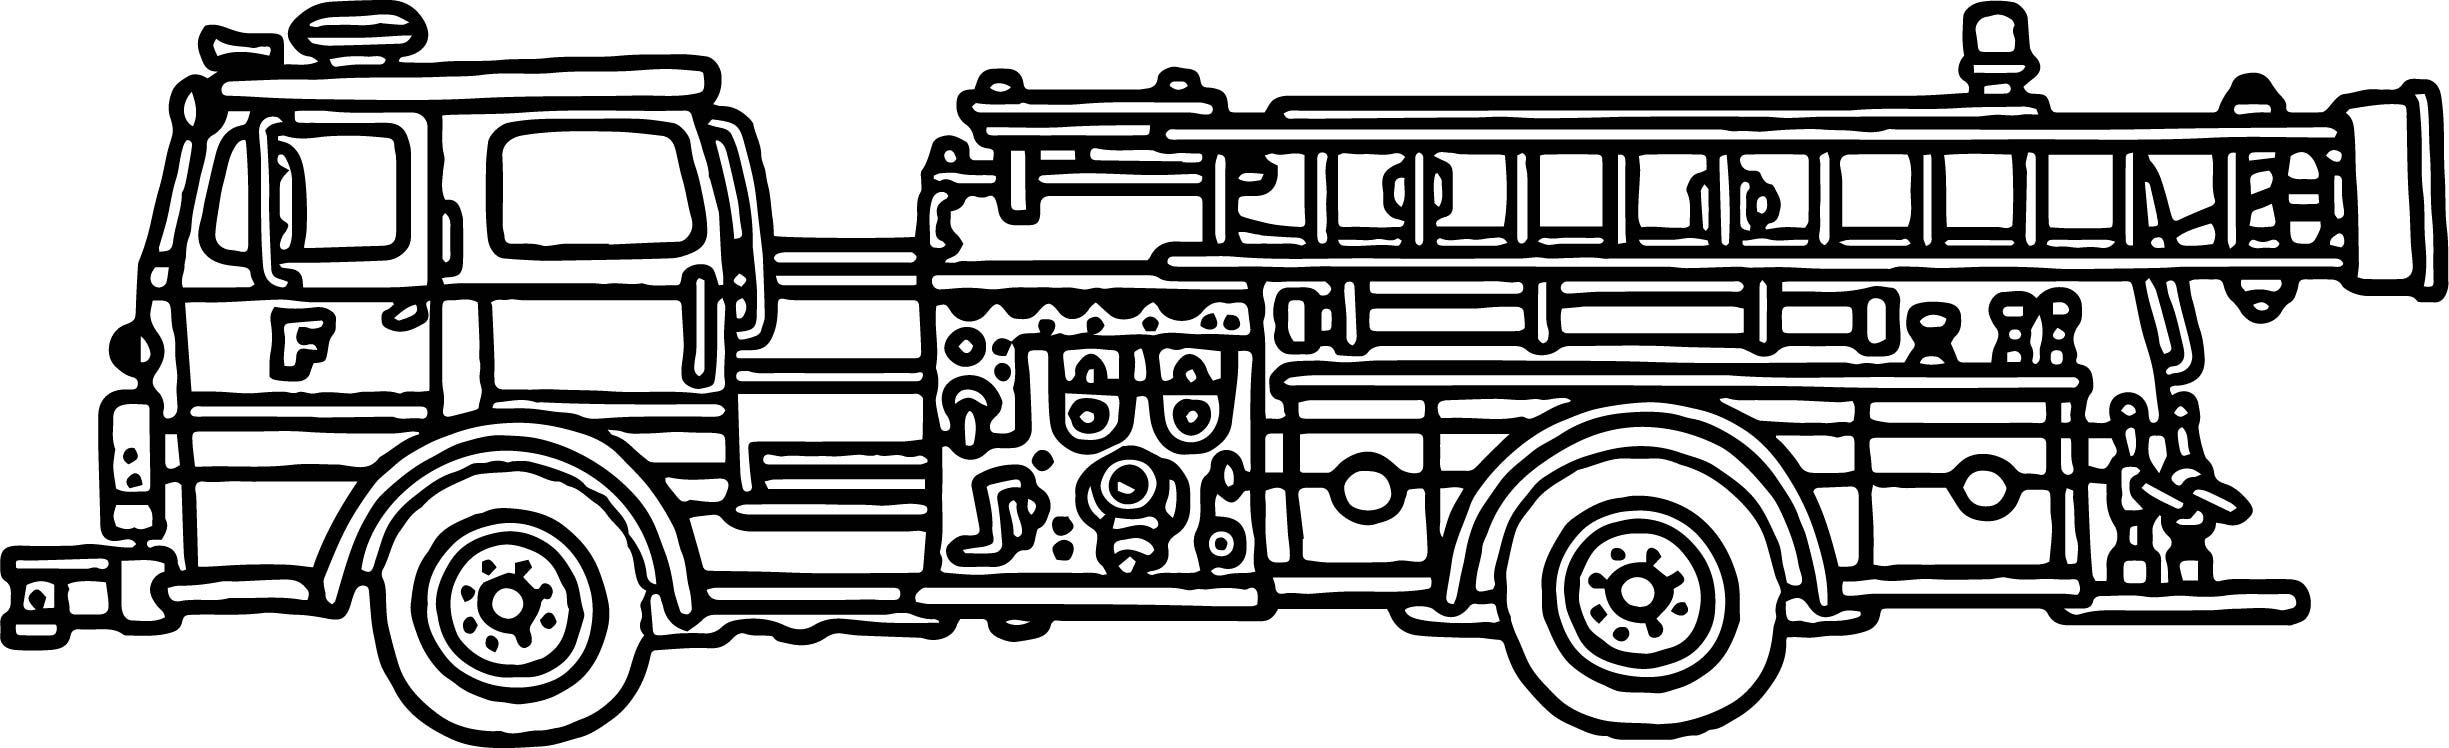 Fire Truck Coloring Page Kenworth Wrecker Fire Truck Coloring Page Wecoloringpage Davemelillo Com Truck Coloring Pages Train Coloring Pages Monster Truck Coloring Pages